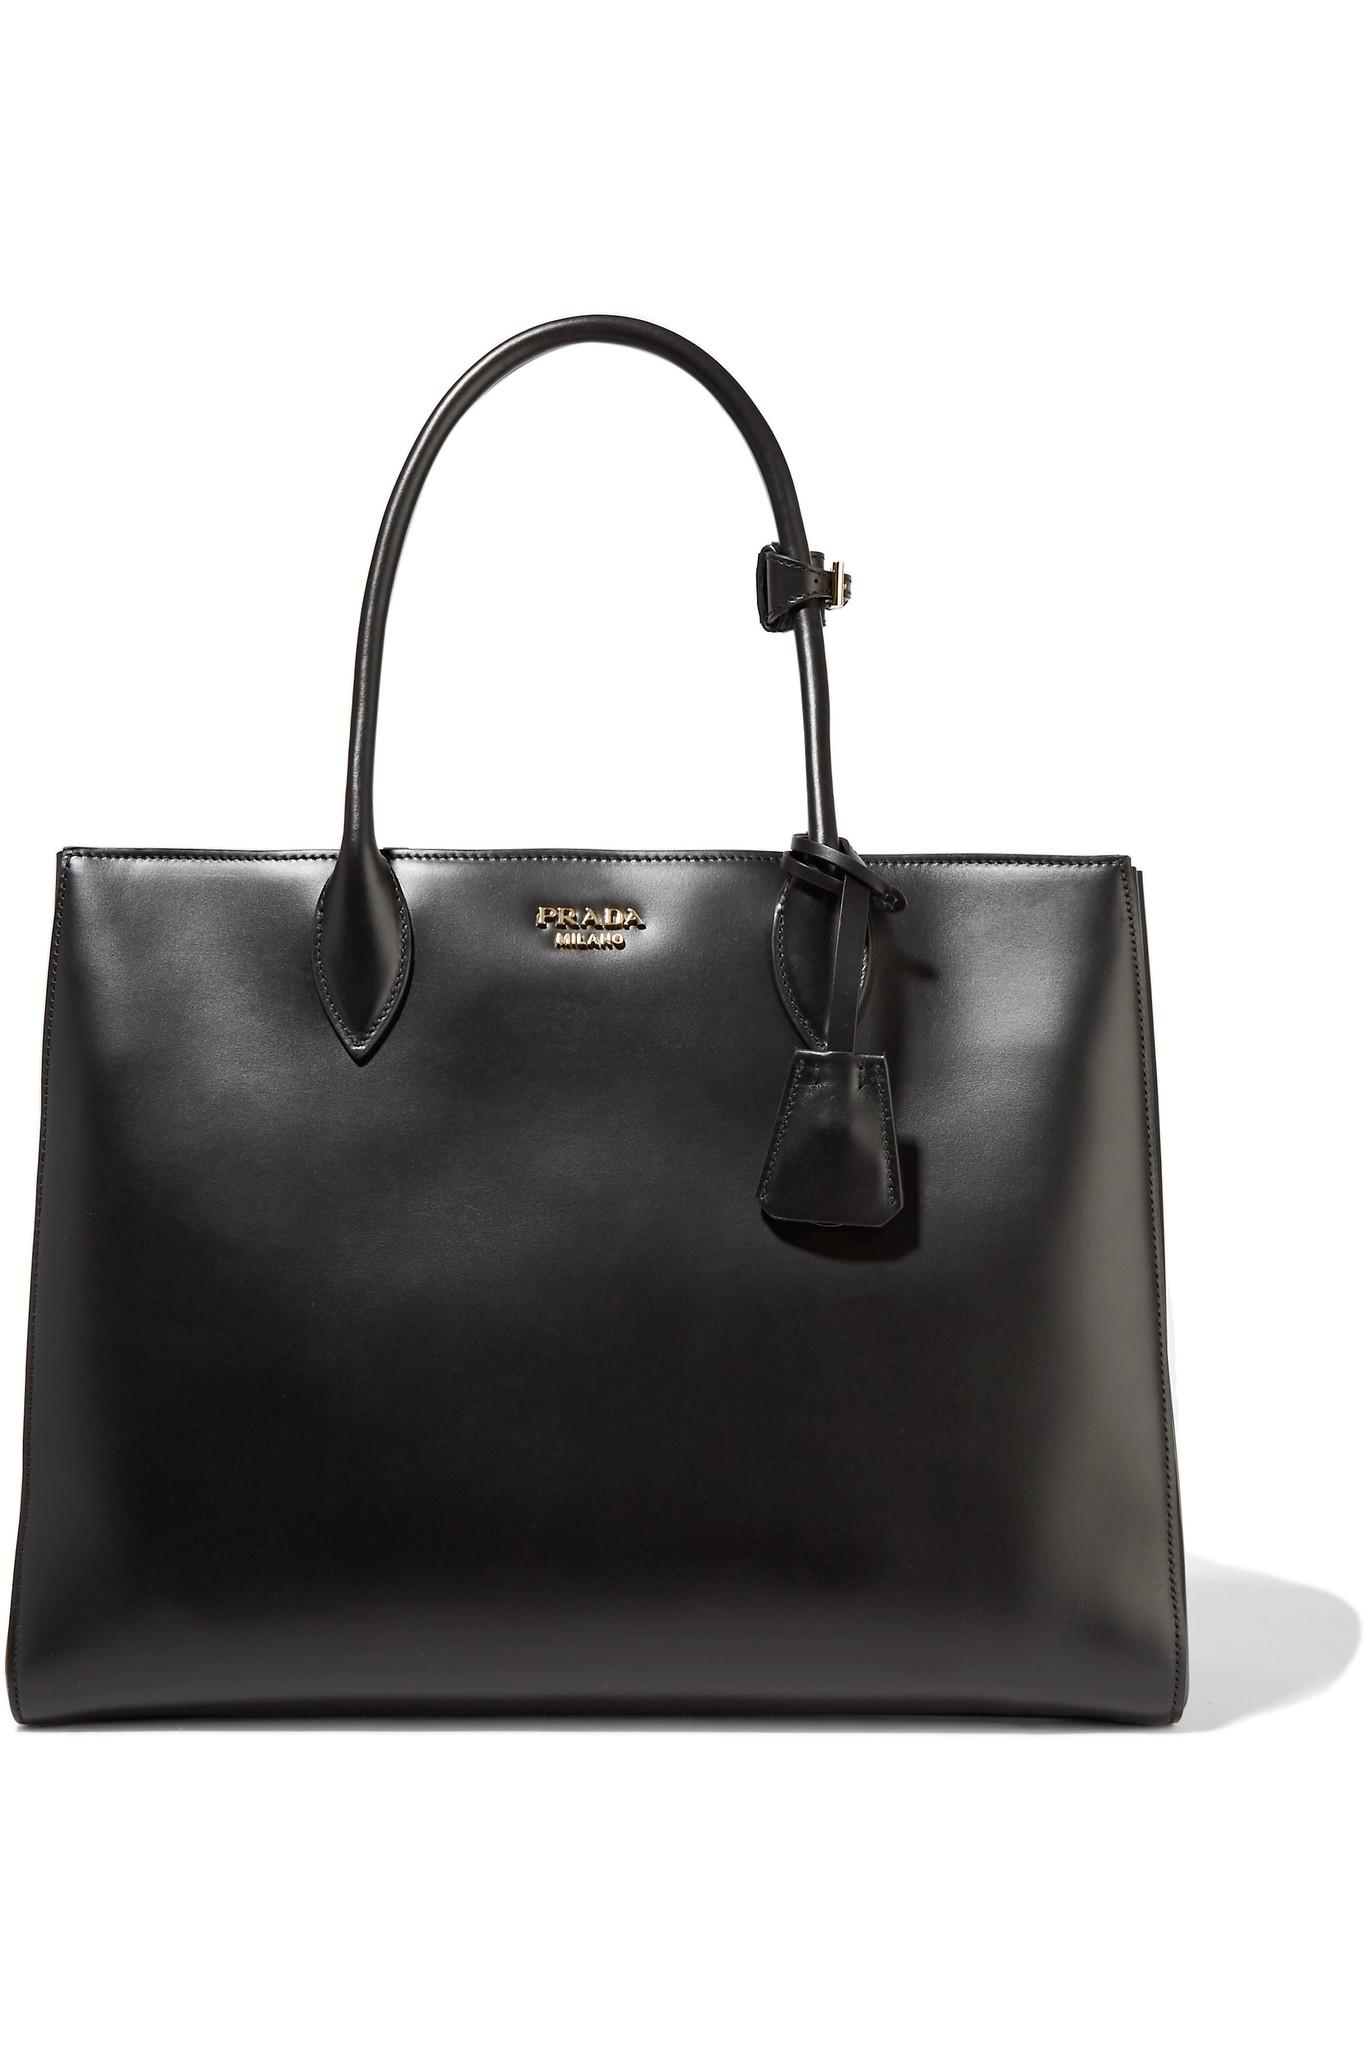 32fc864d2e60 Prada Black Bibliotheque Large Tote Bag | Stanford Center for ...